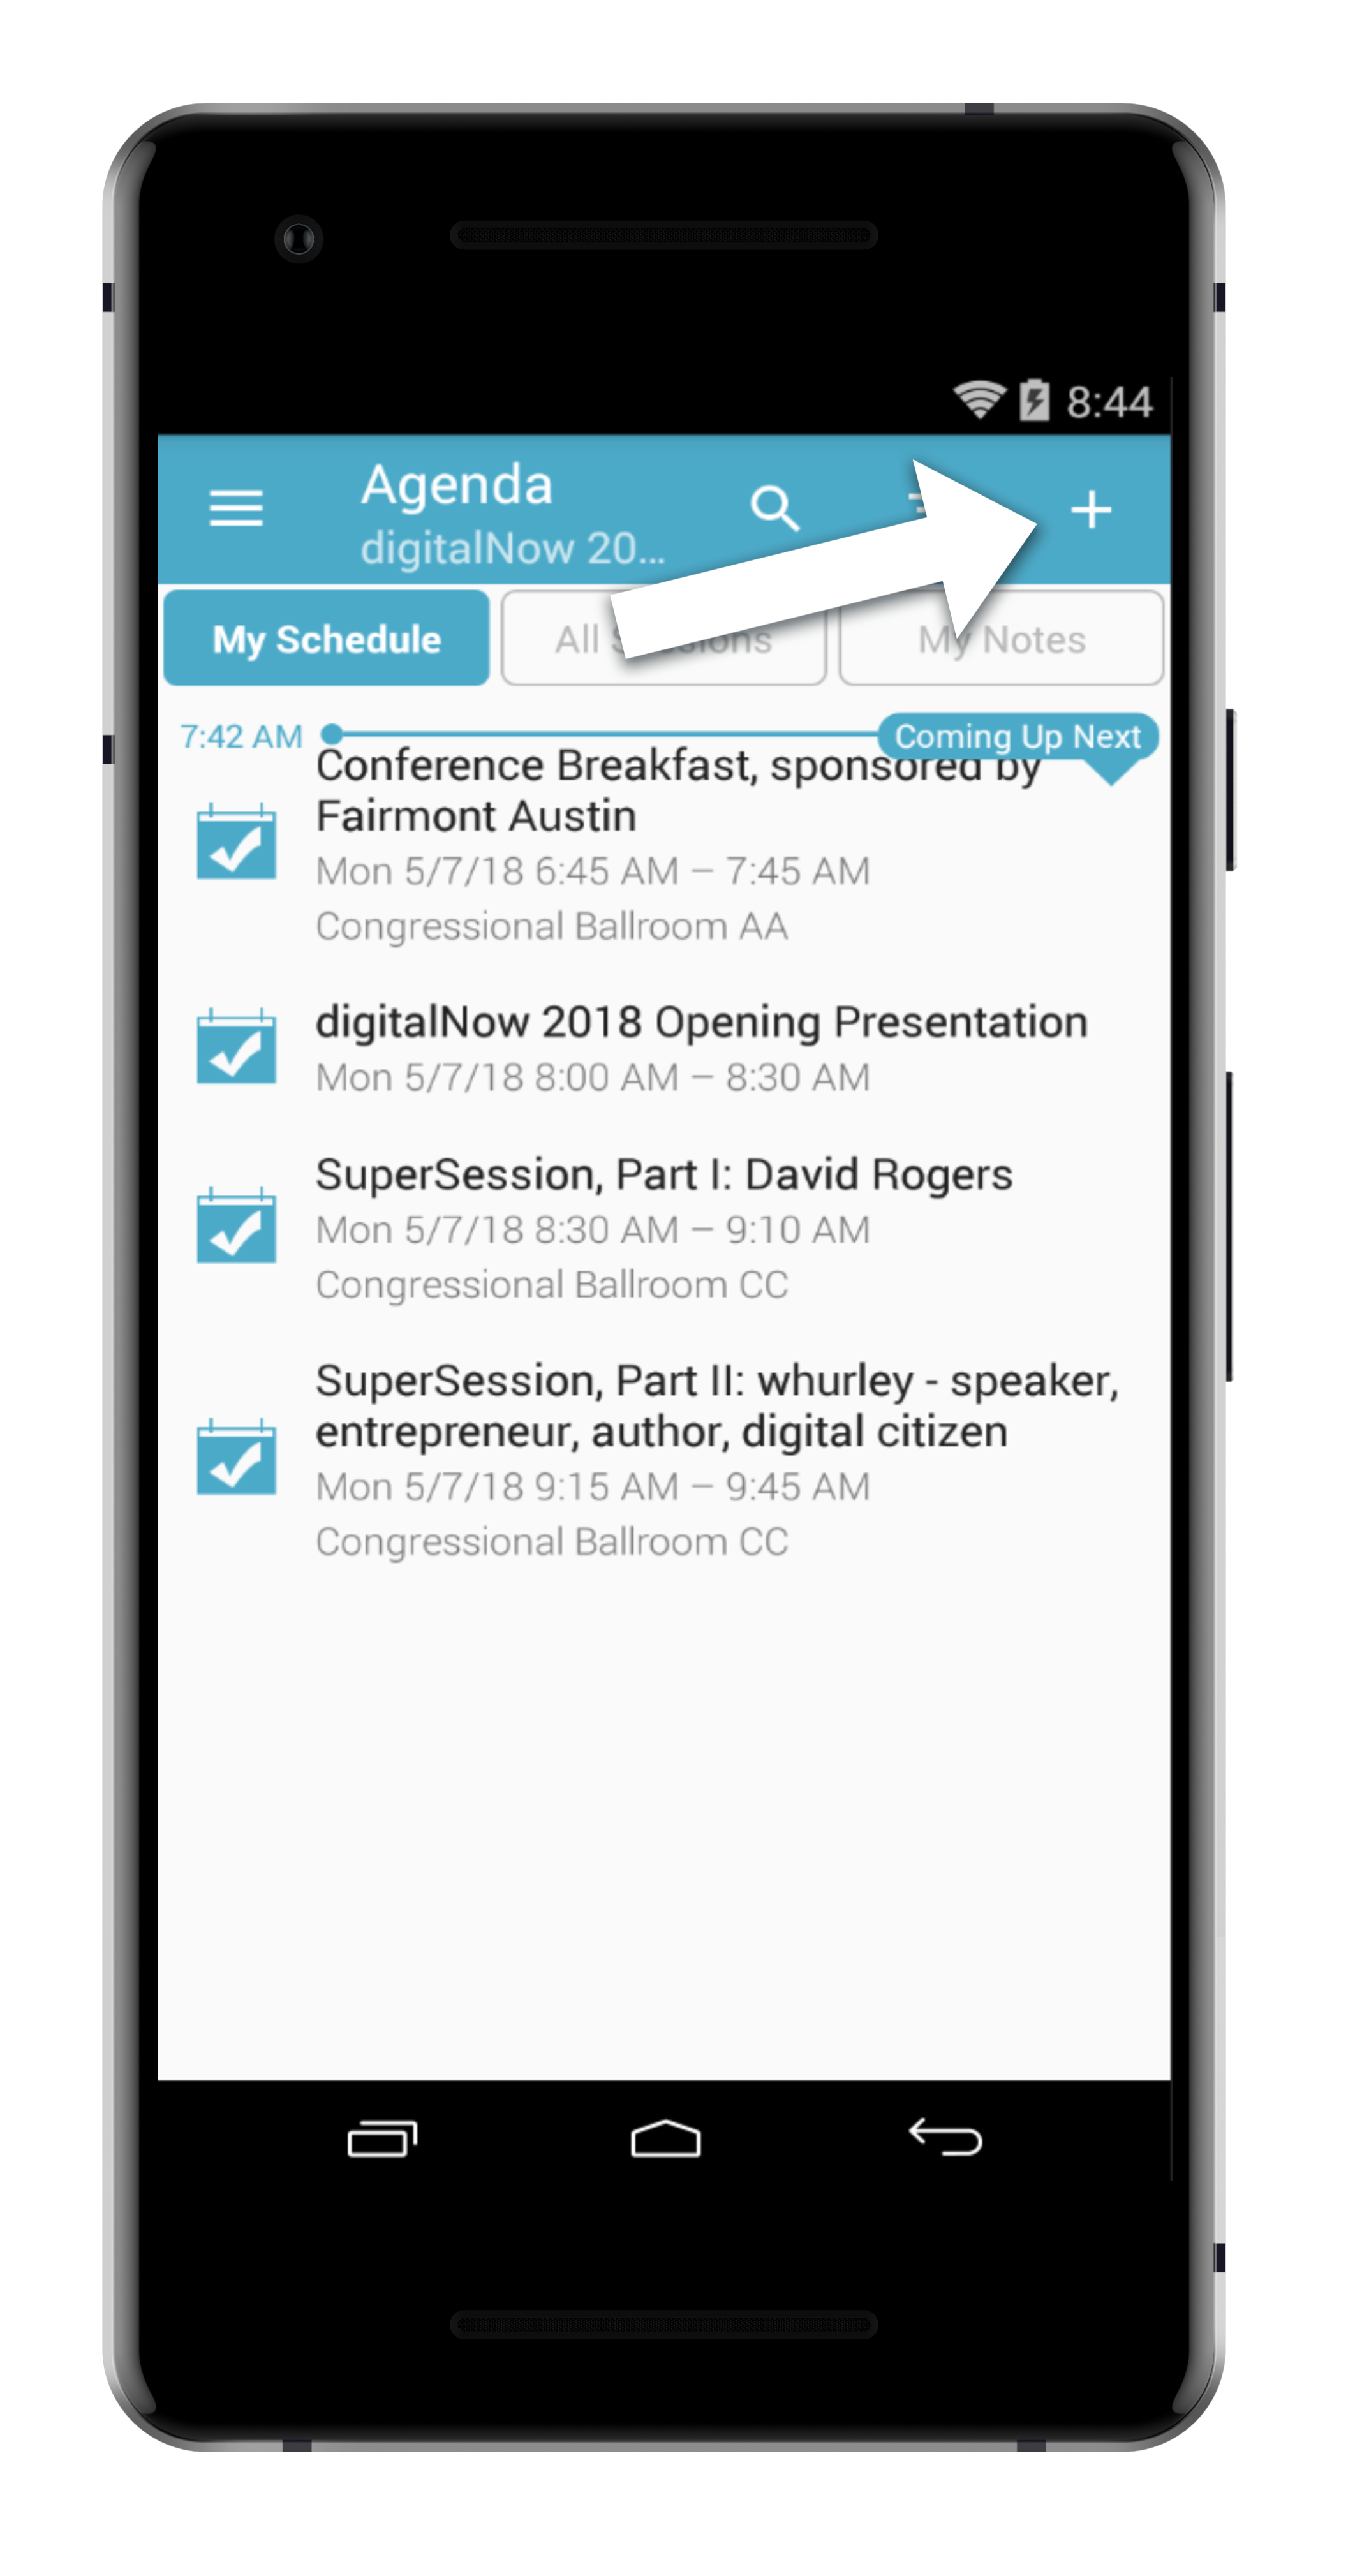 step 2. - FROM THE AGENDA, TAP THE LITTLE PLUS SIGN IN THE TOP RIGHT CORNER.